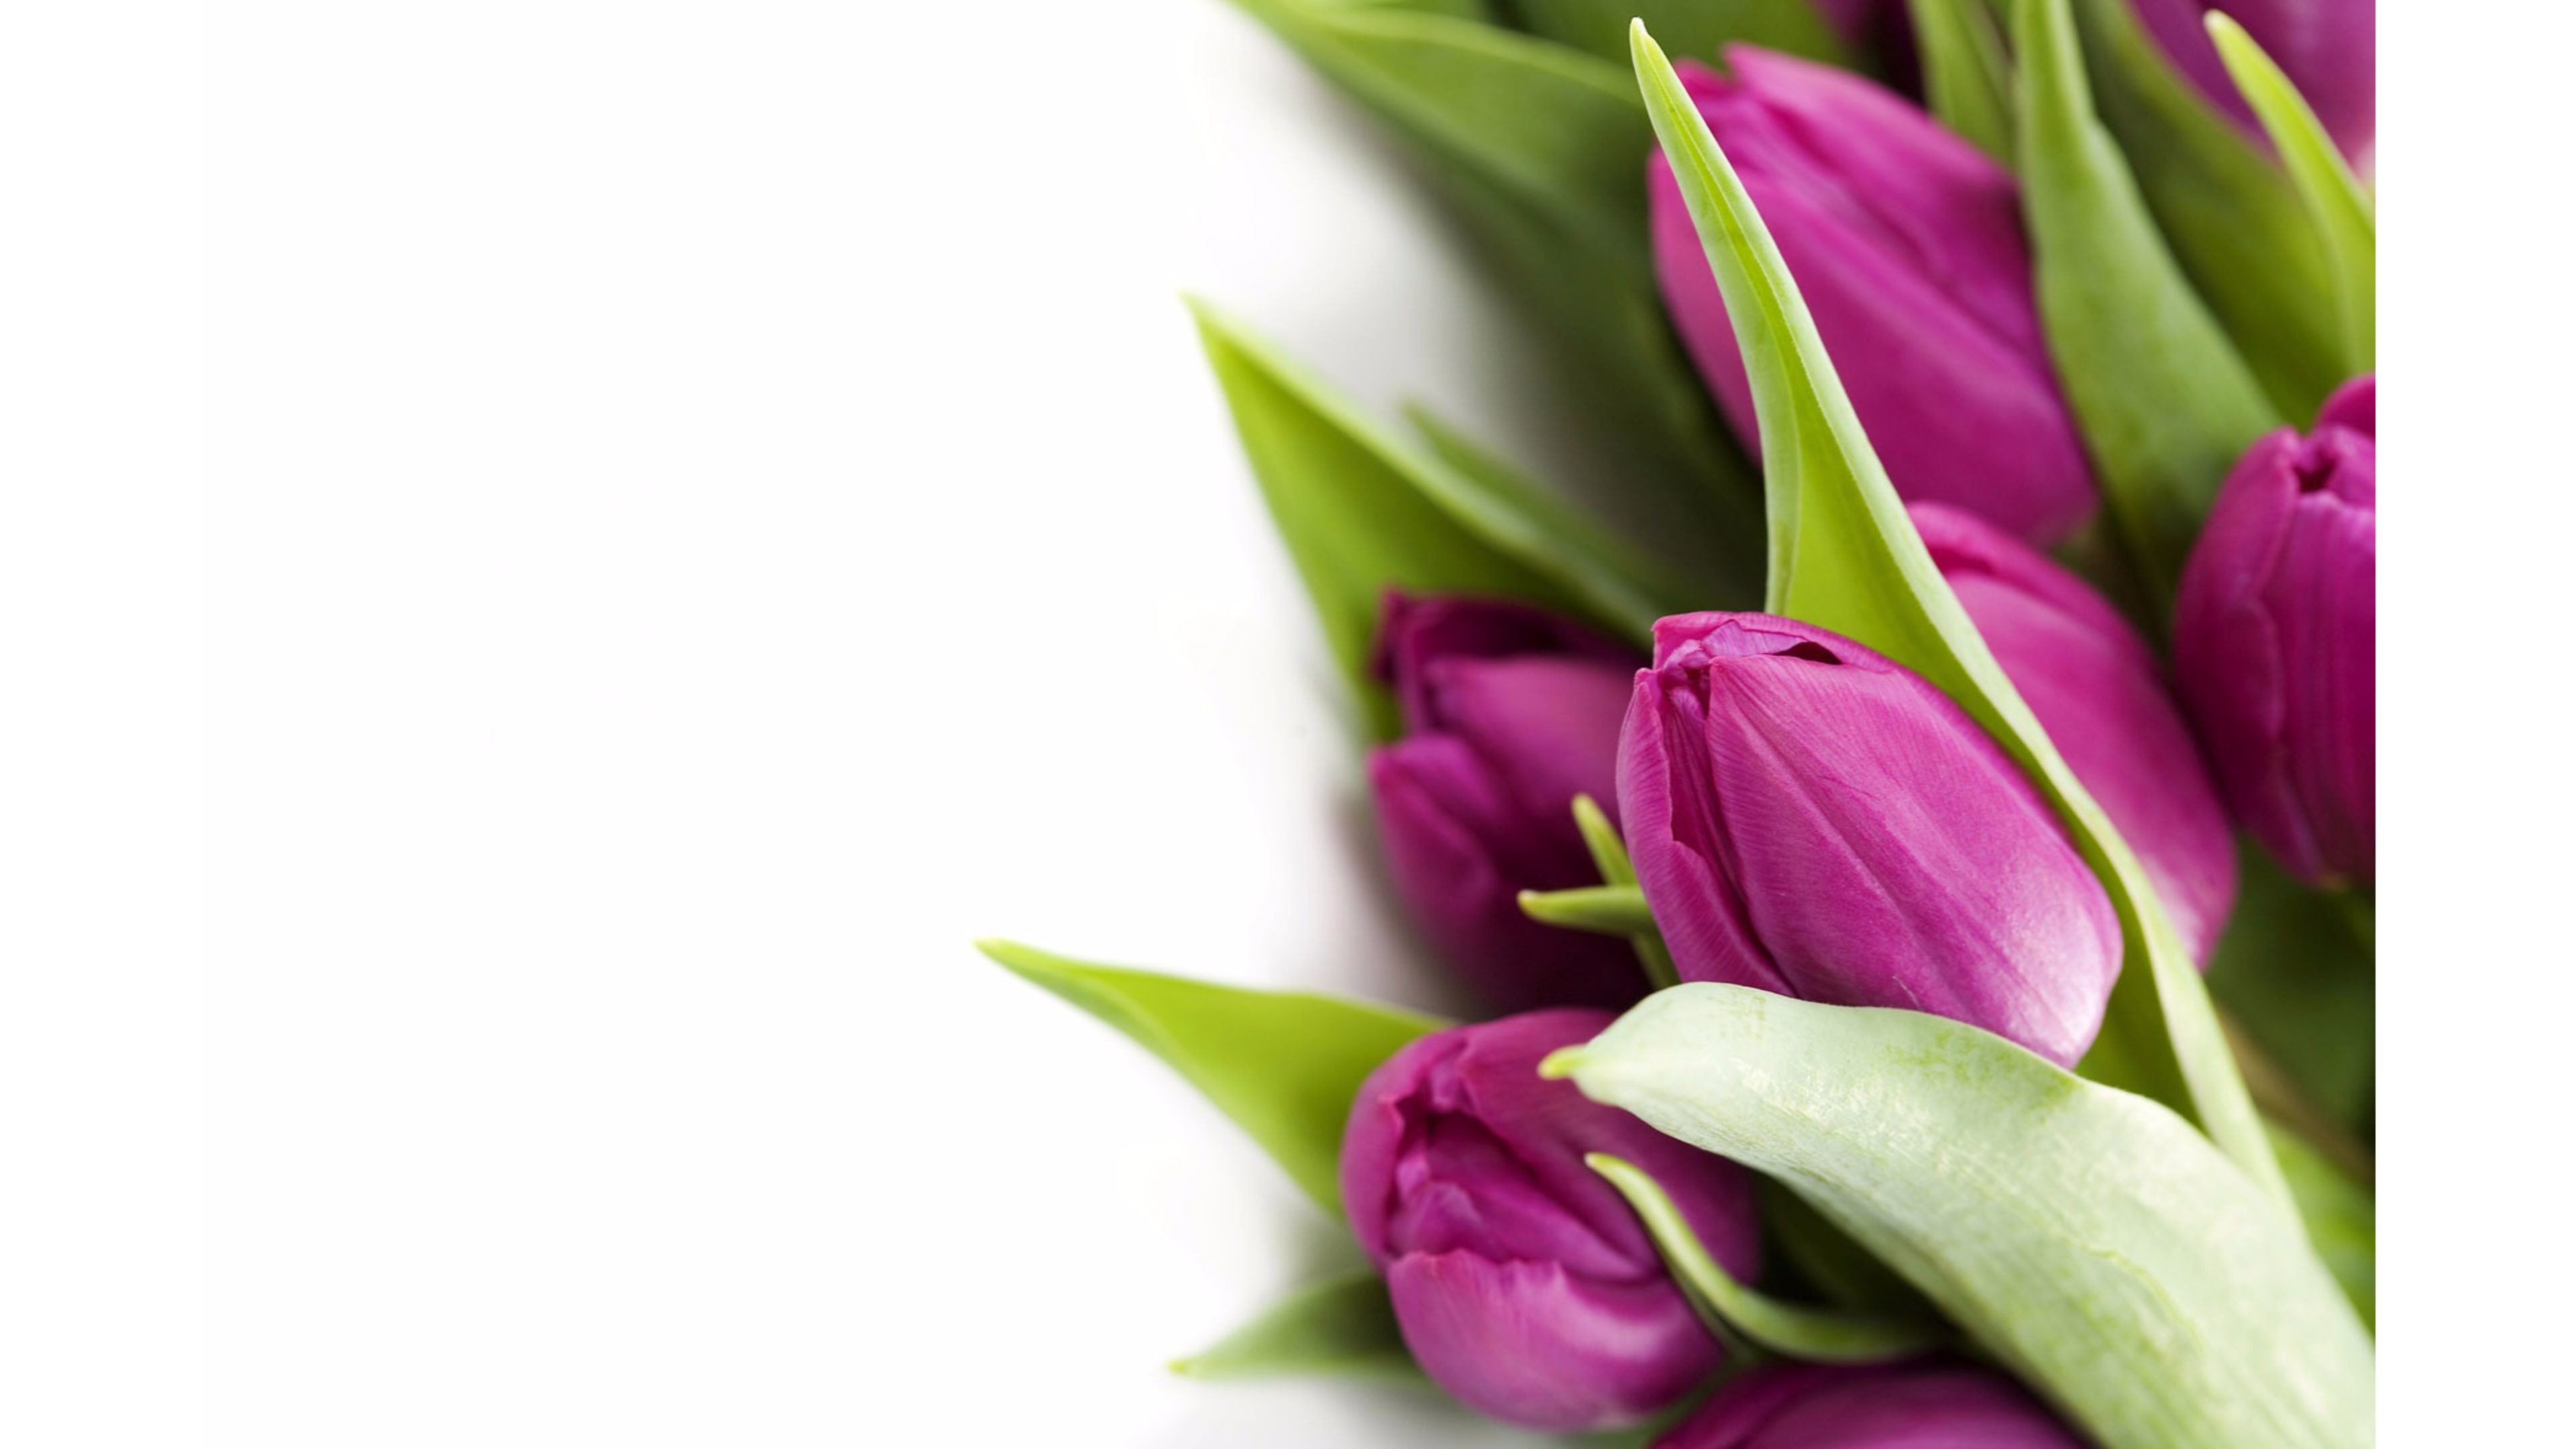 3840x2160 Violet 4K Tulips Wallpaper